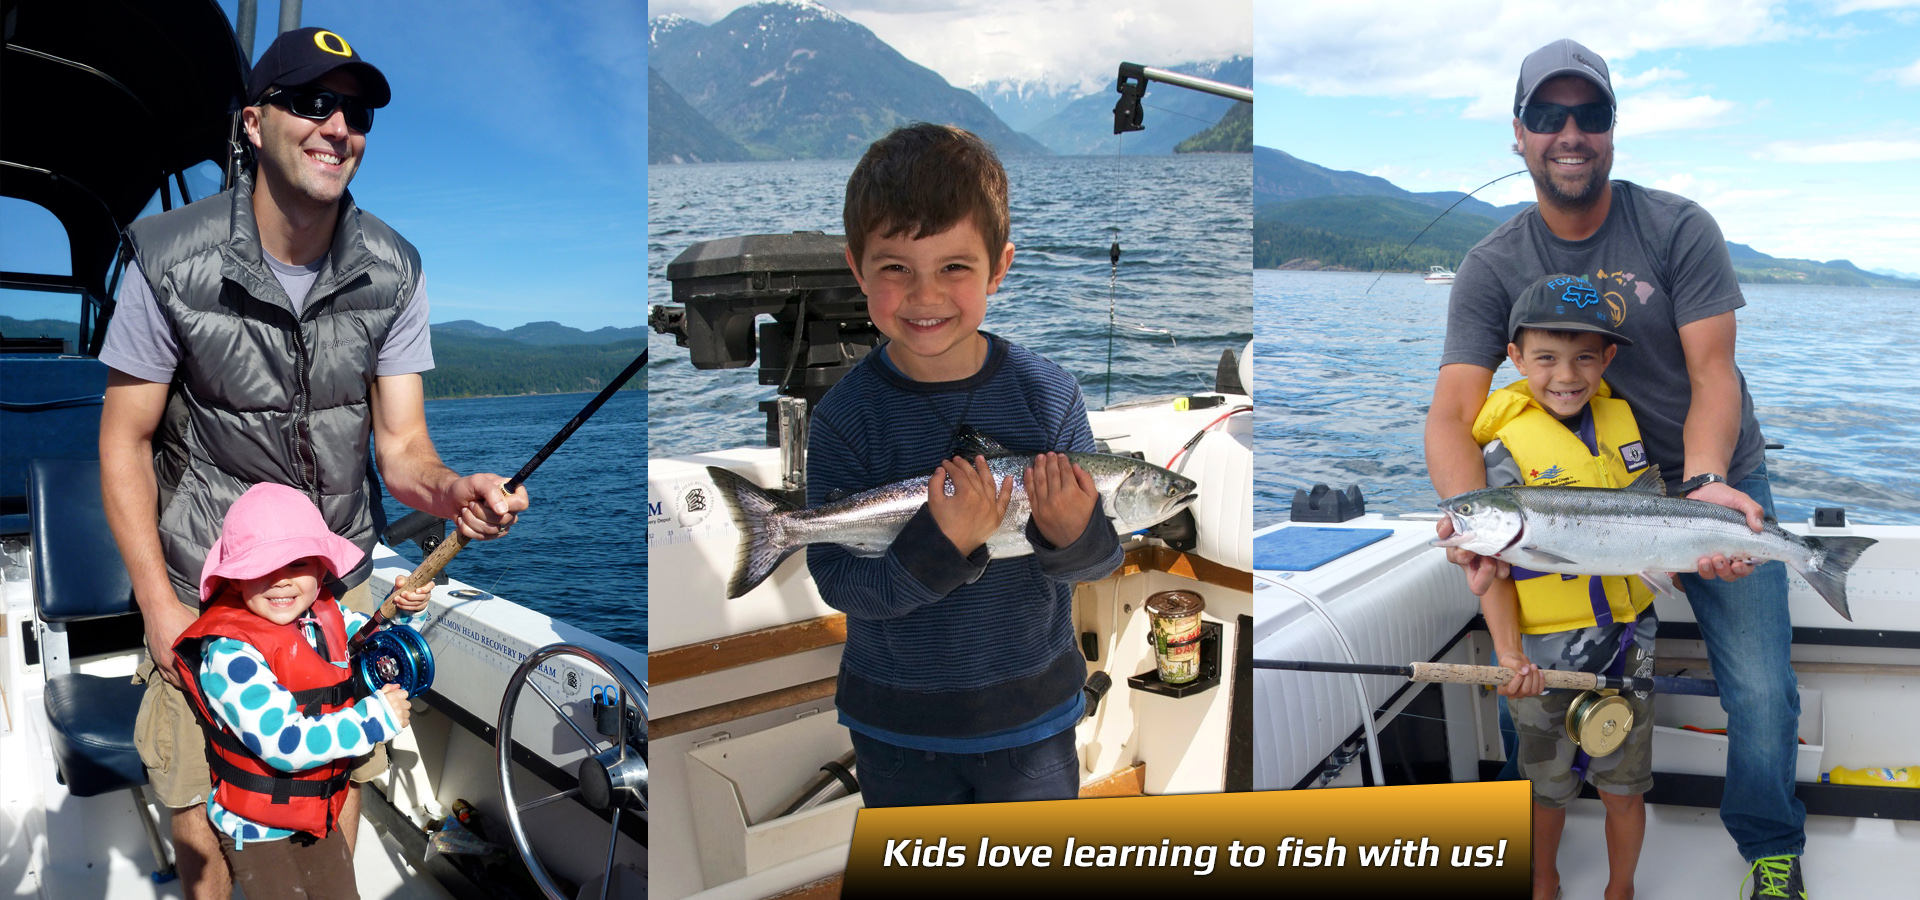 kids fish with profish